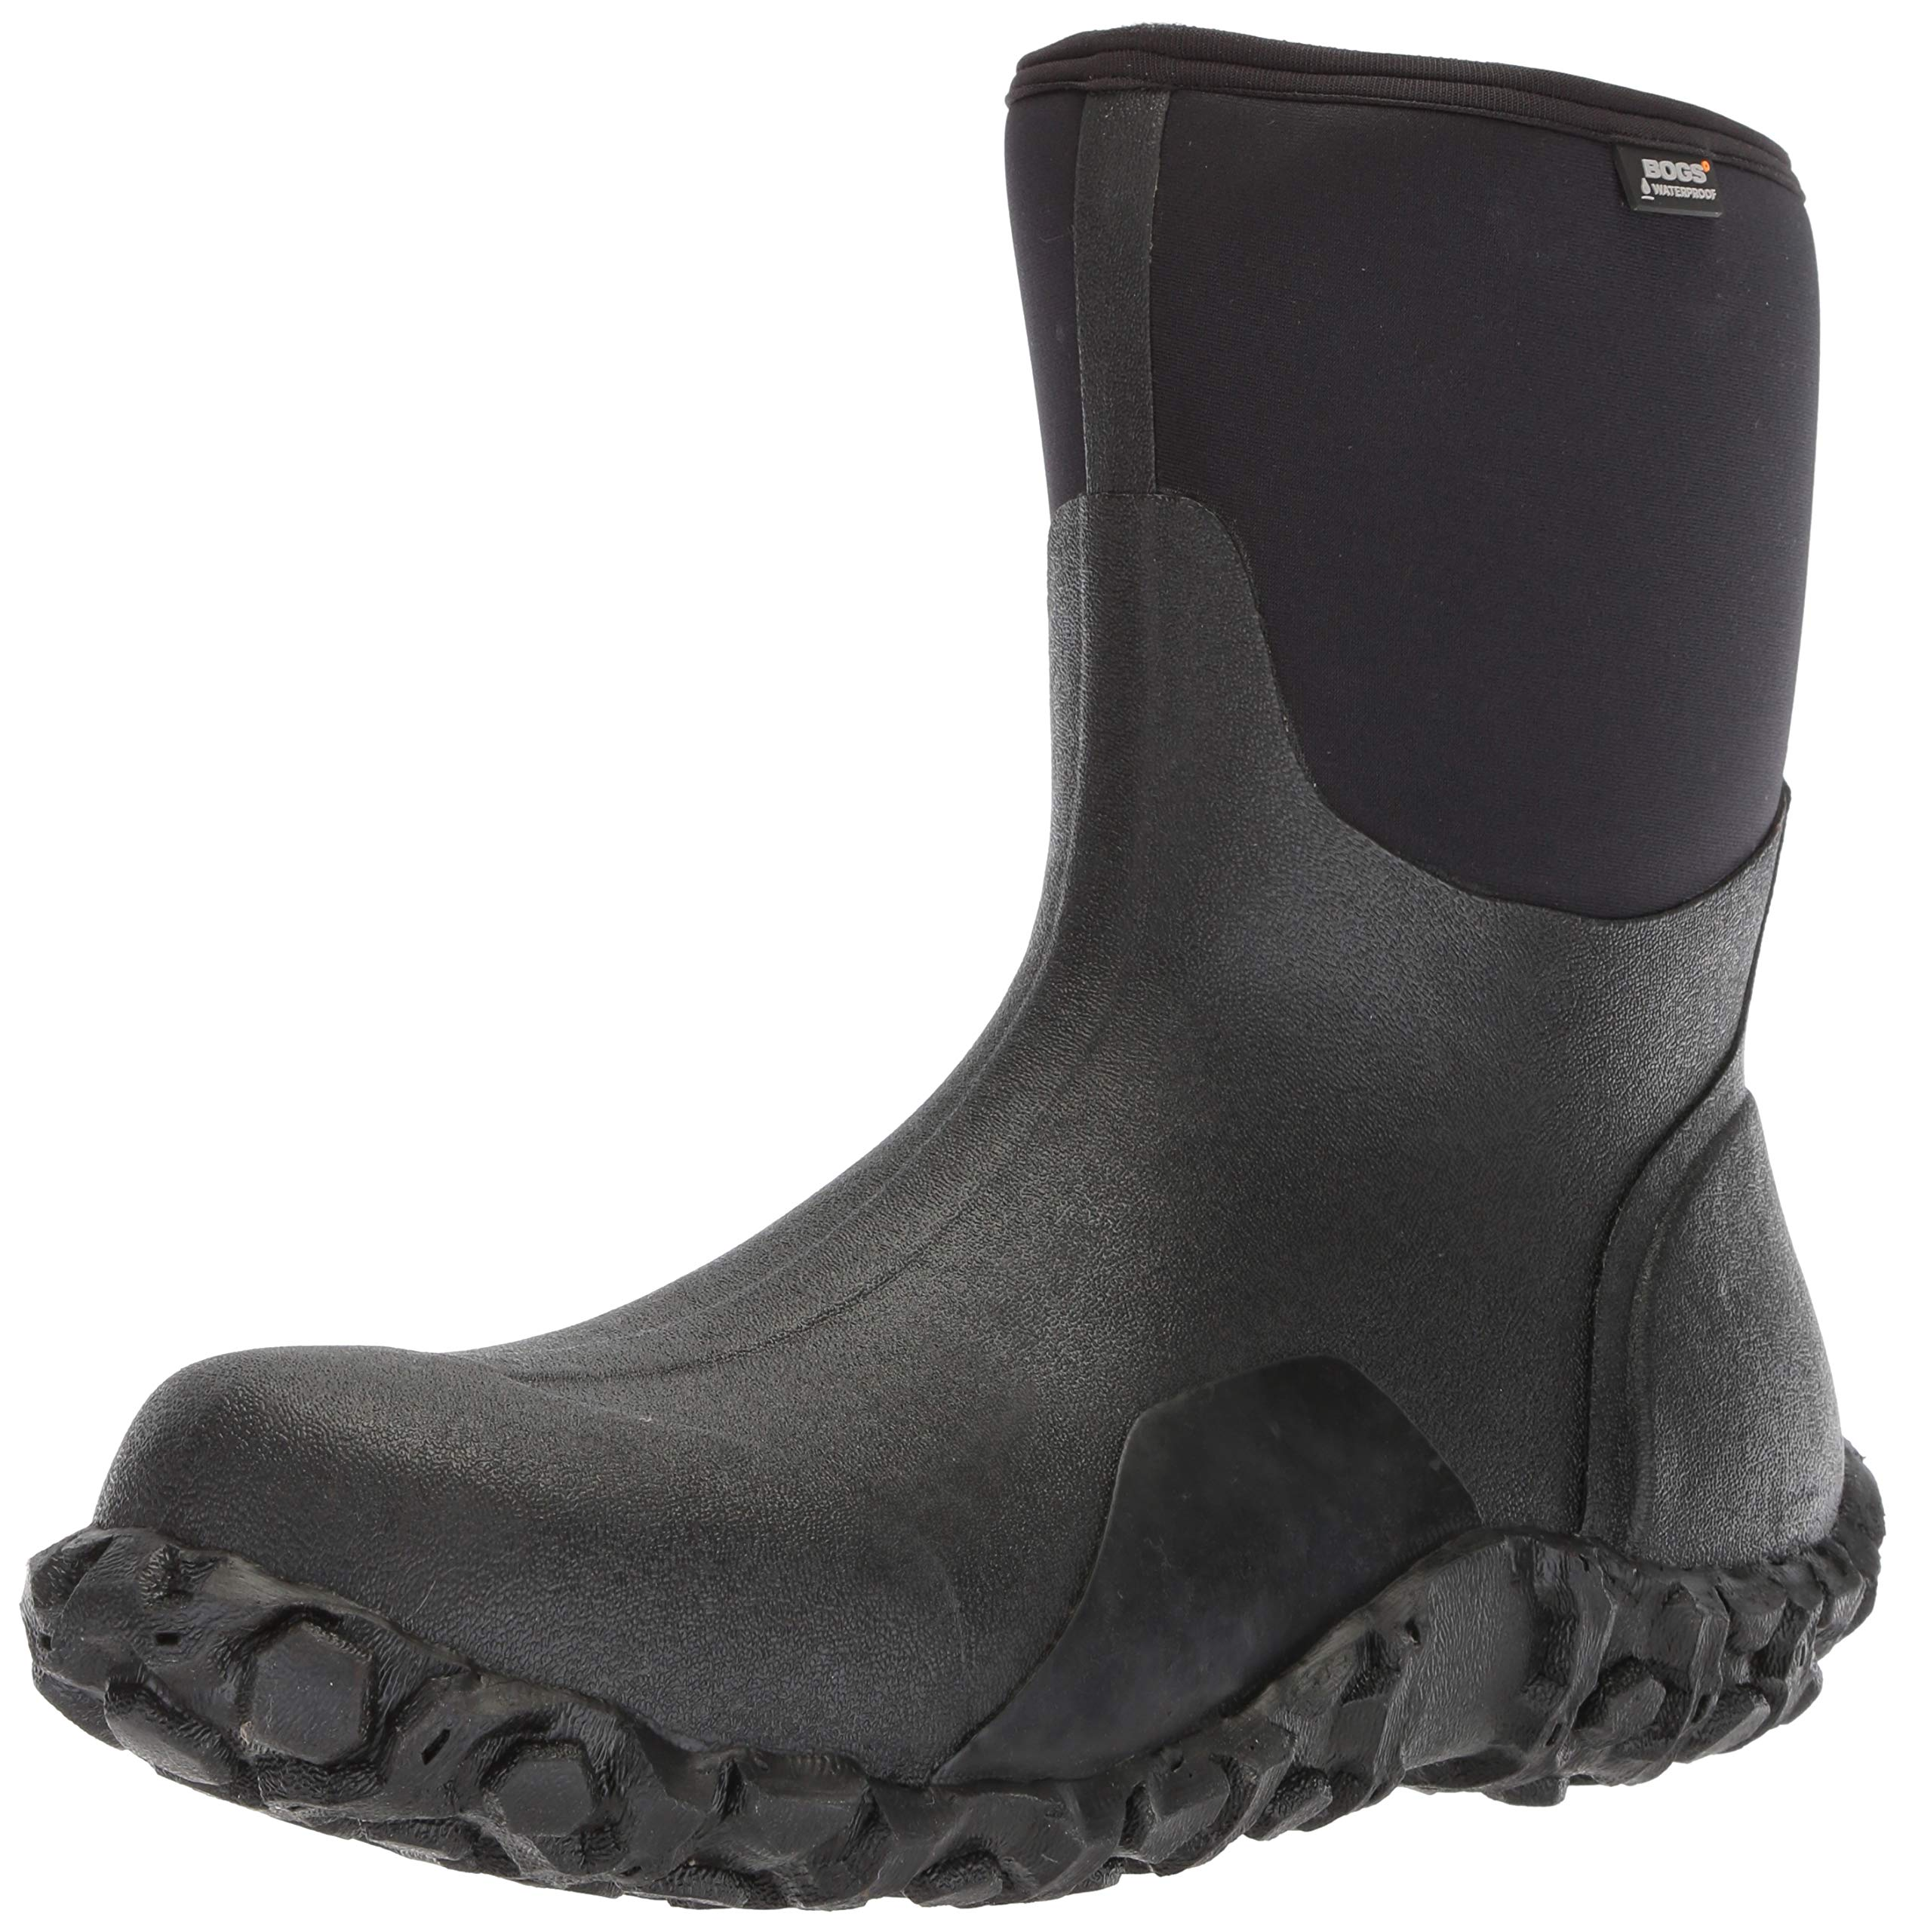 c6956d51803b3 Bogs Mens Classic Mid Waterproof Insulated Rain and Winter Snow Boot  product image